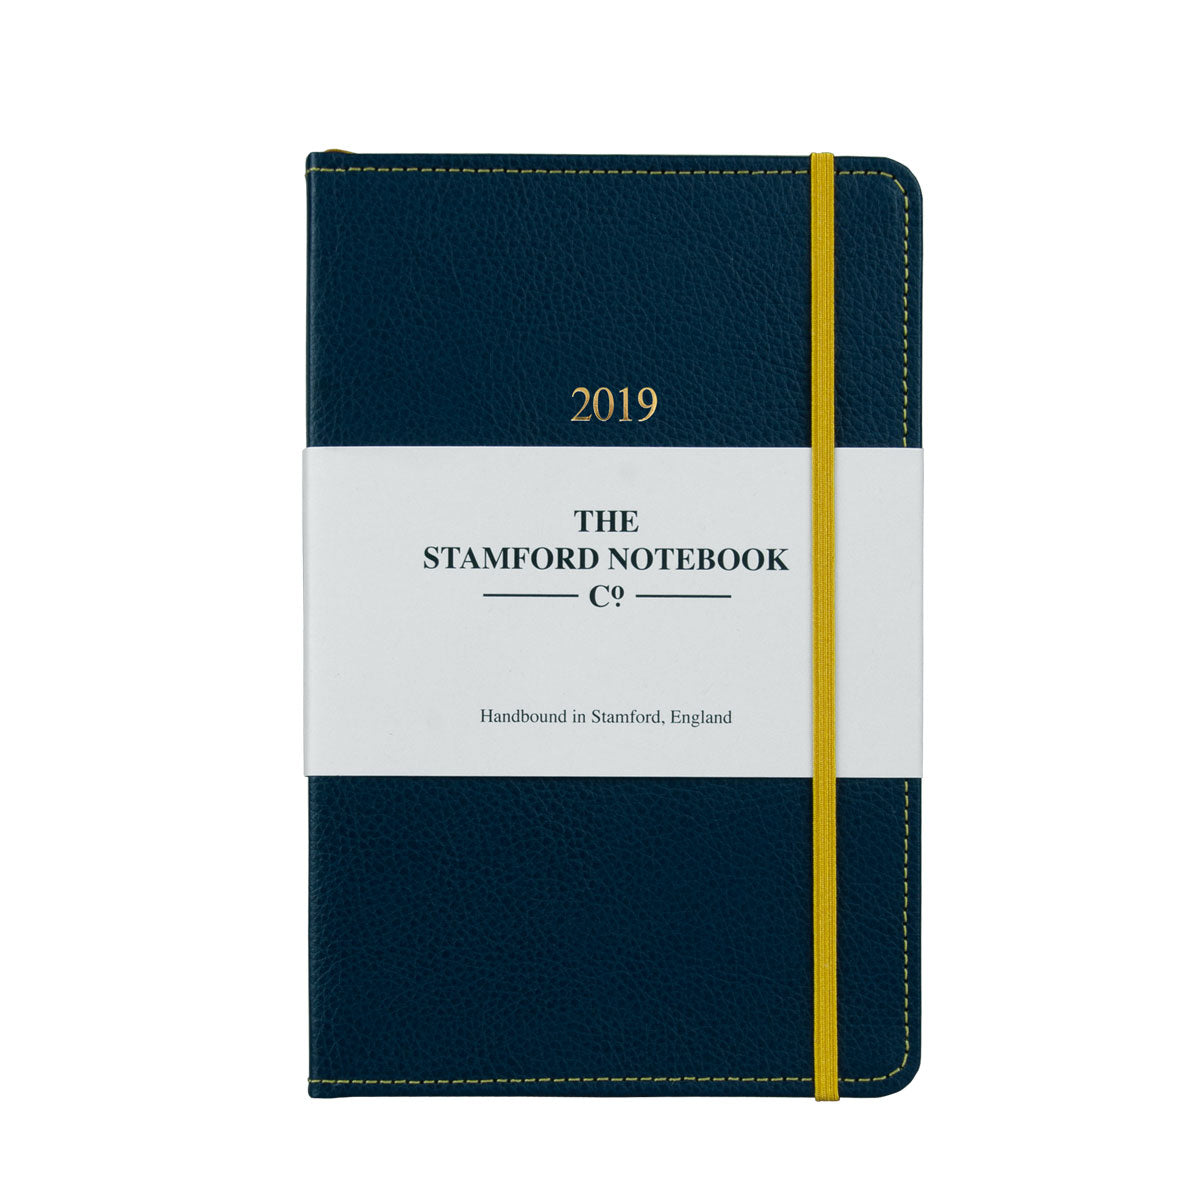 Marine Blue leather diary with yellow stitching